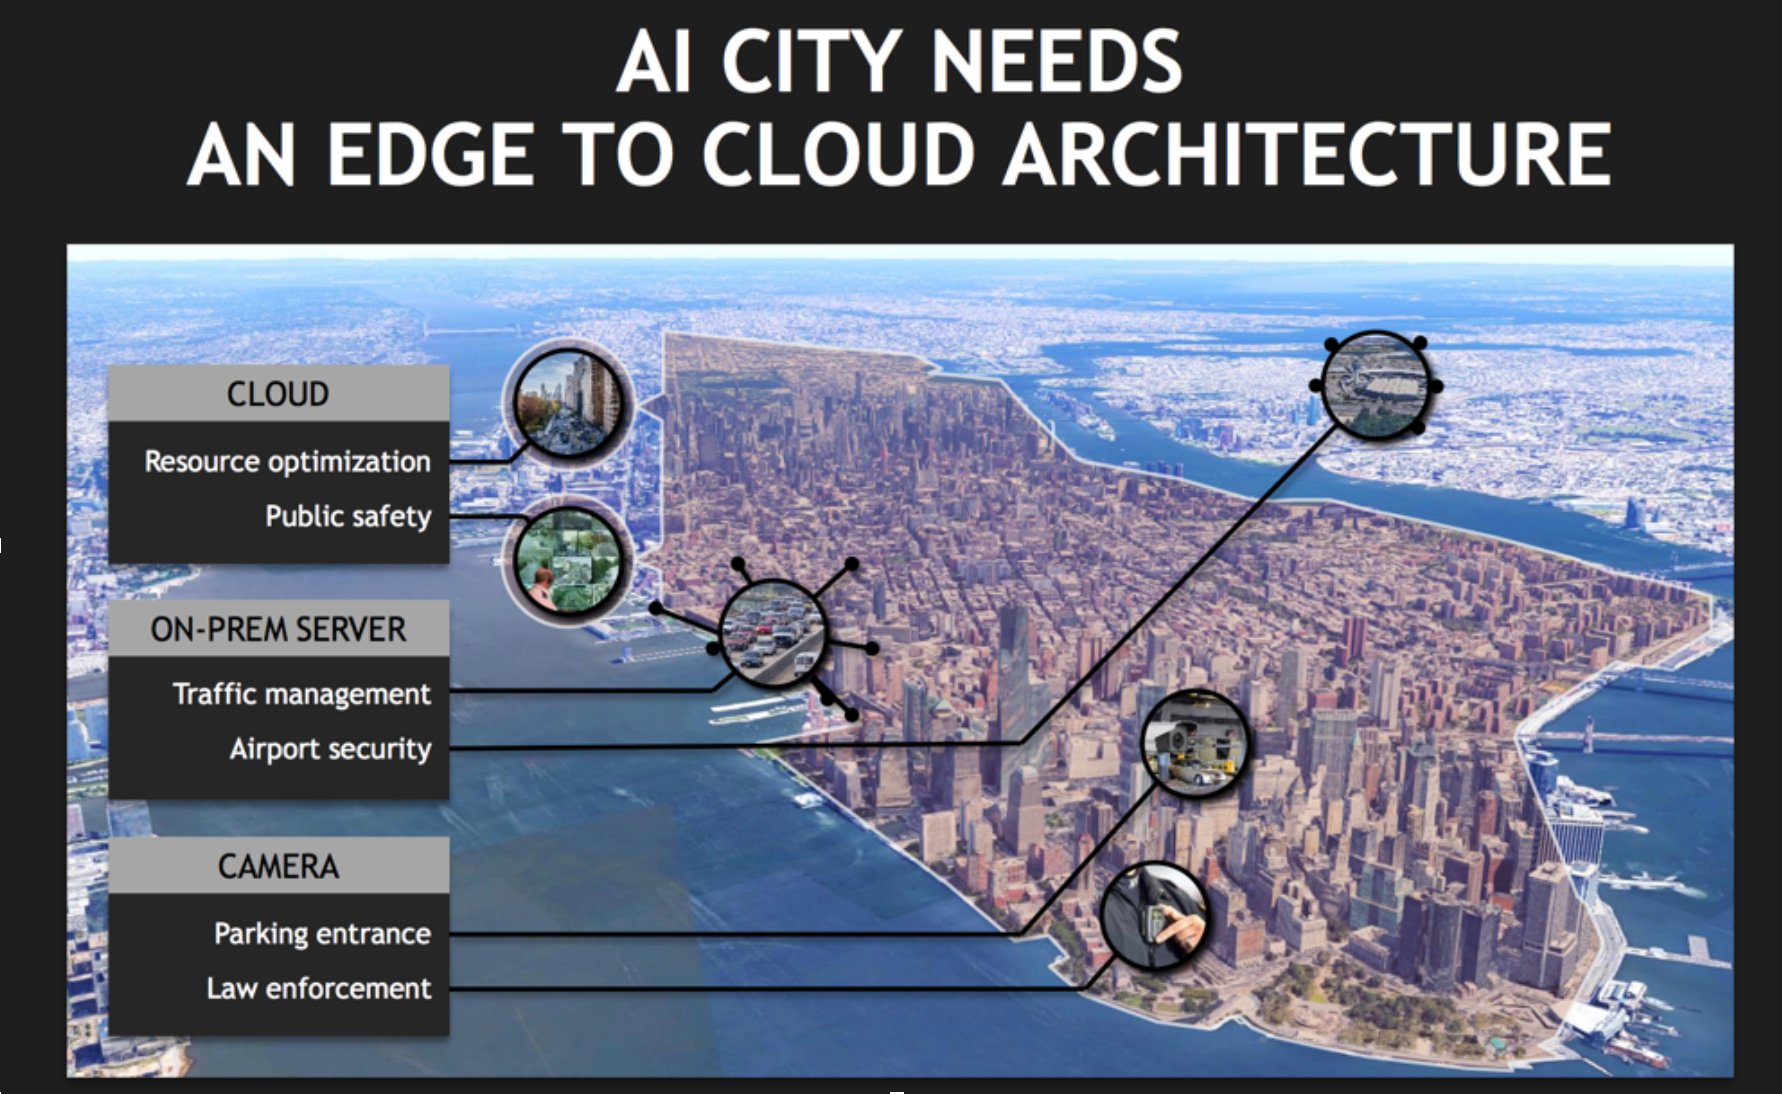 Slide from NVIDIA's presentation on Smart Cities and AI